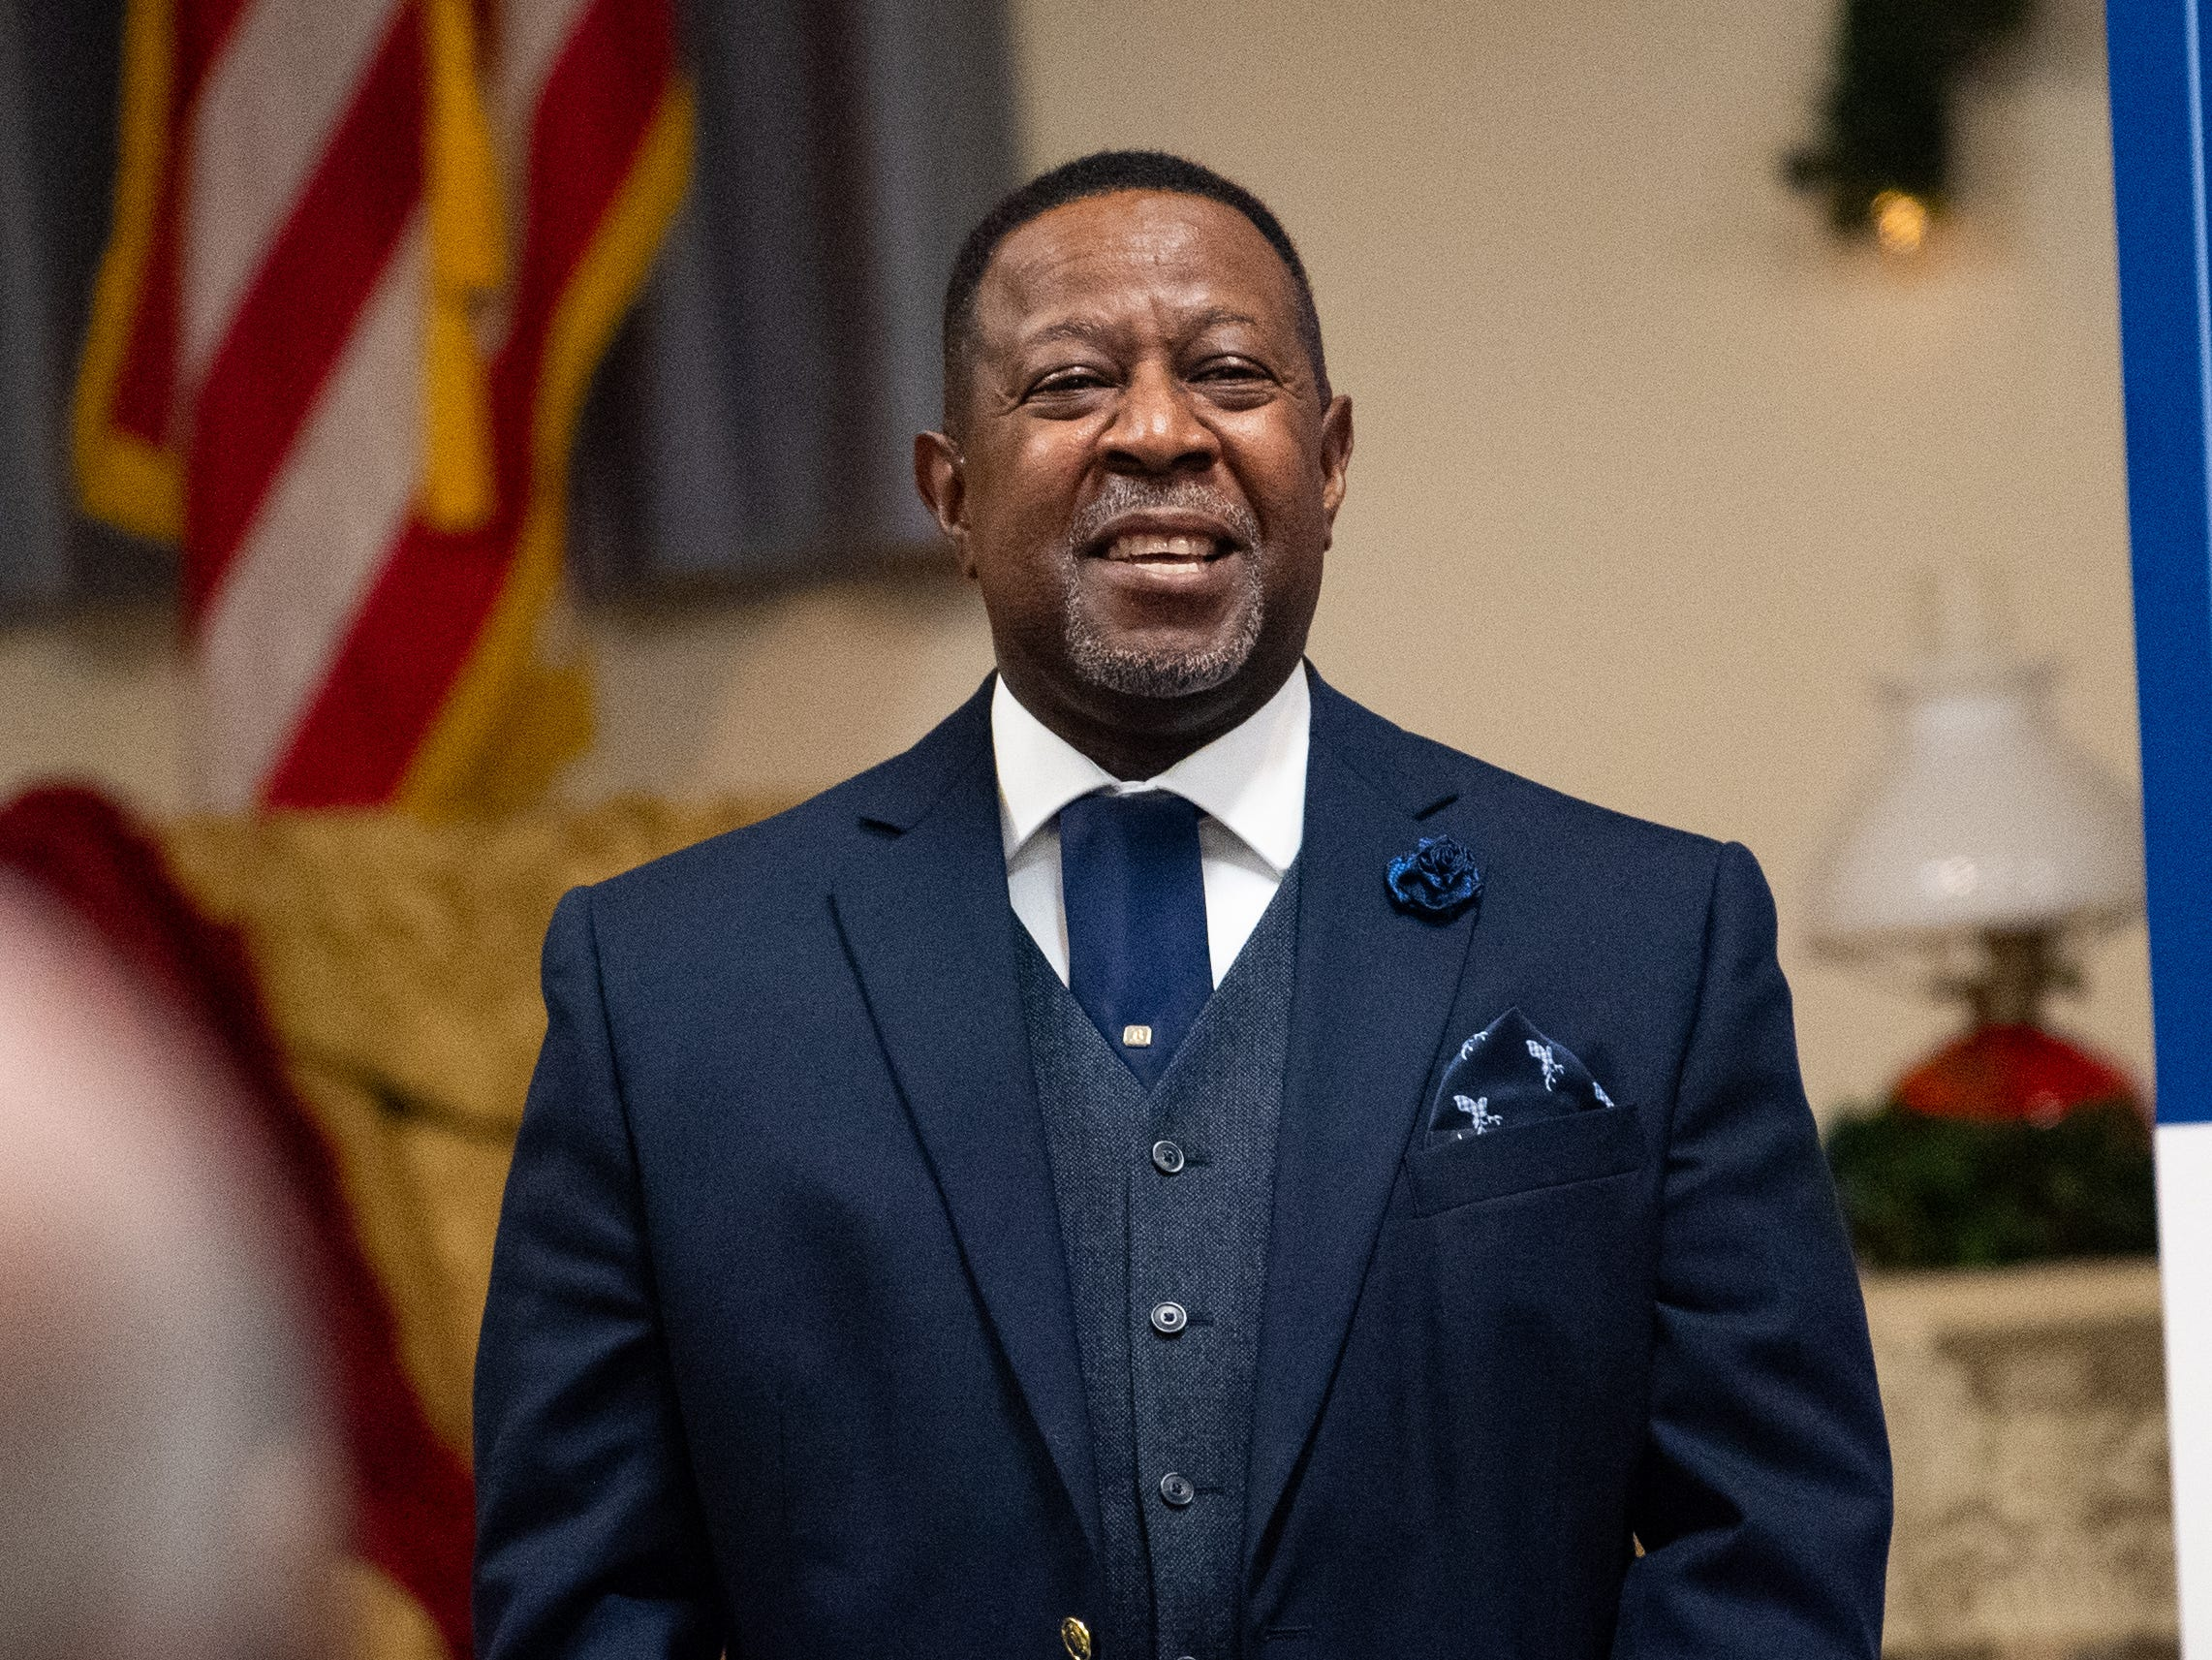 Reverend Dr. Melvin Baber of Friendship Baptist Church talks about the many forms of racism that people of color endure daily, January 31, 2019.